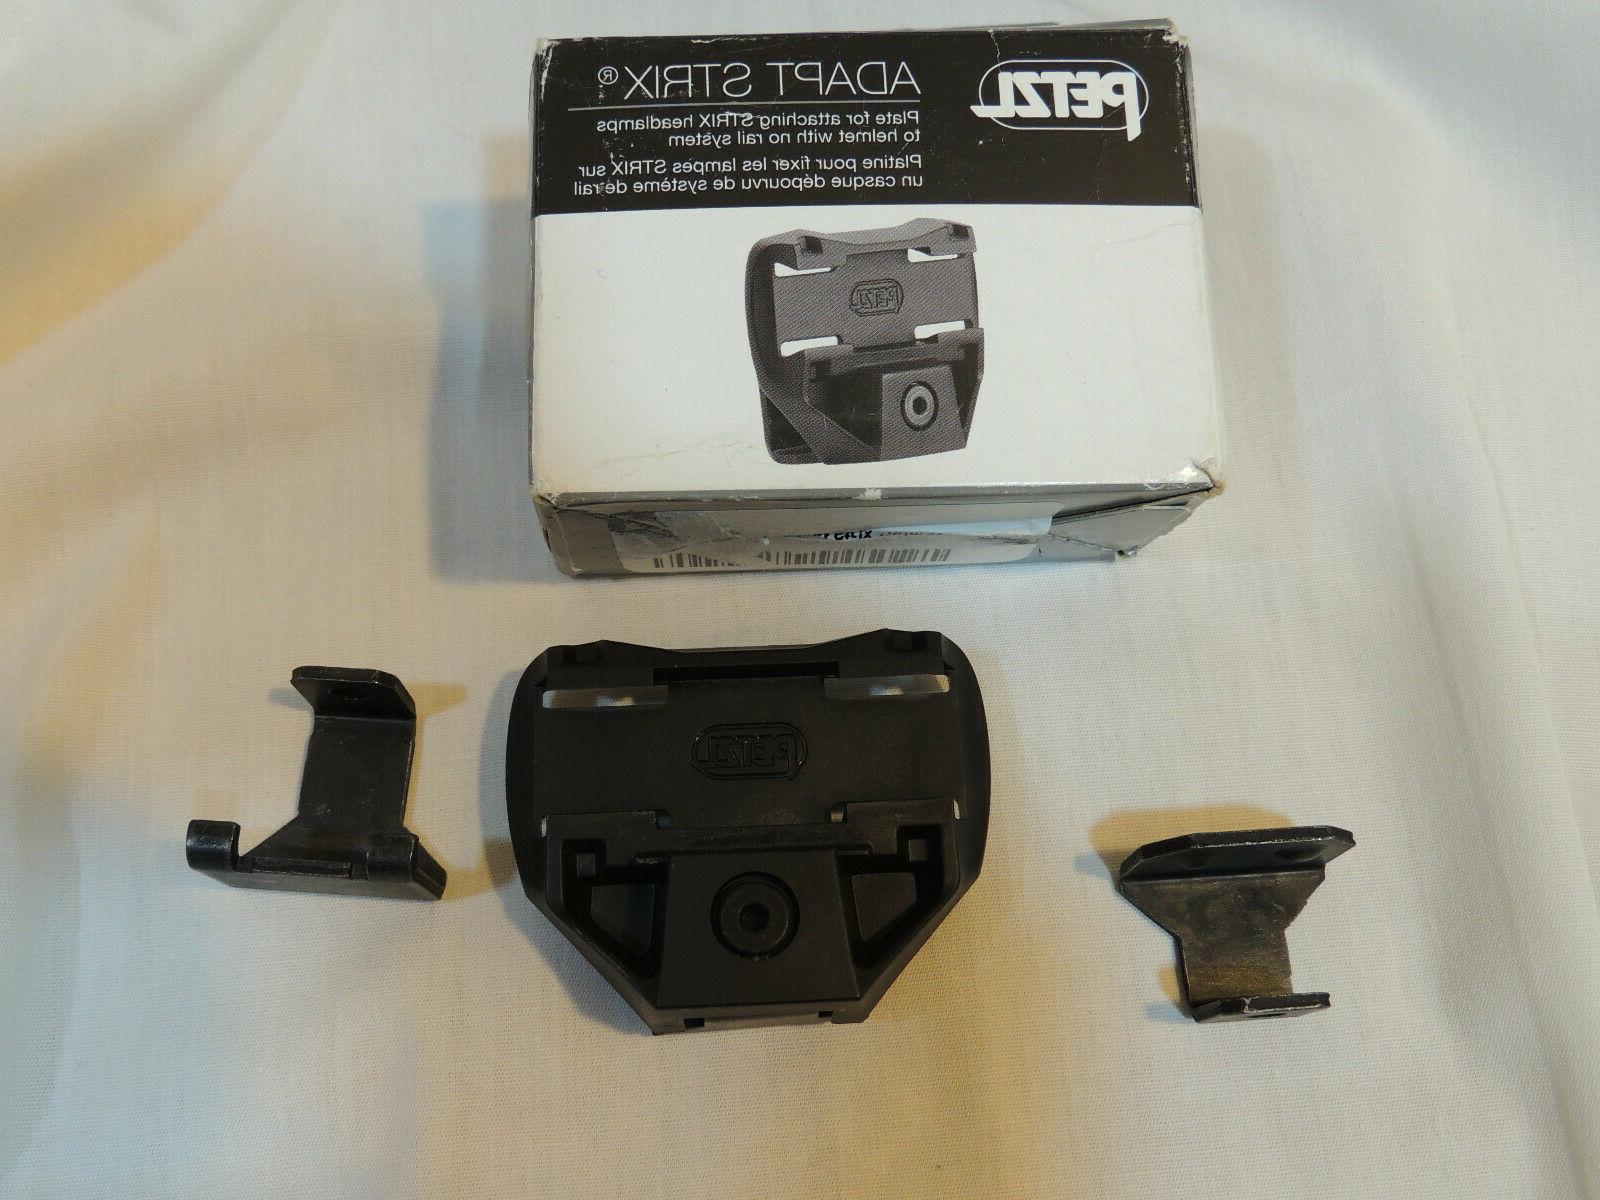 adapt strix vl and ir tactical headlamp